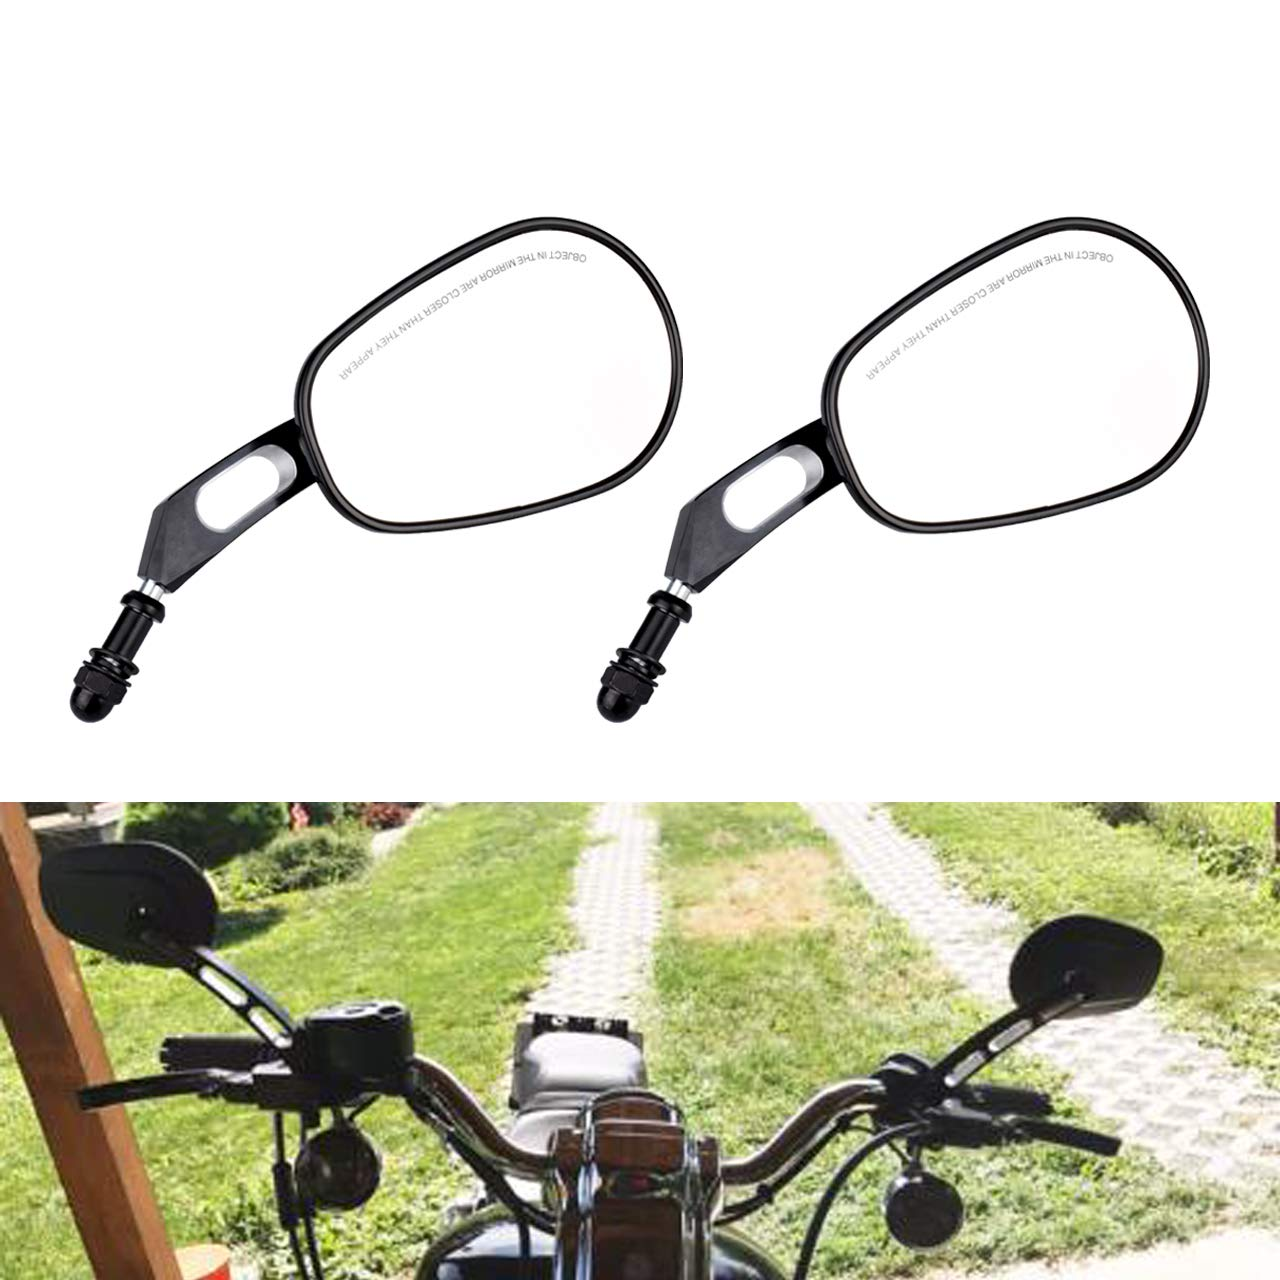 NATGIC 1 Pair 8MM Black View Side Mirrors for Harley Road King Touring XL883 Sportster 1200 Fatboy Road King Glide VRSCAW V-ROD Dyna Softail